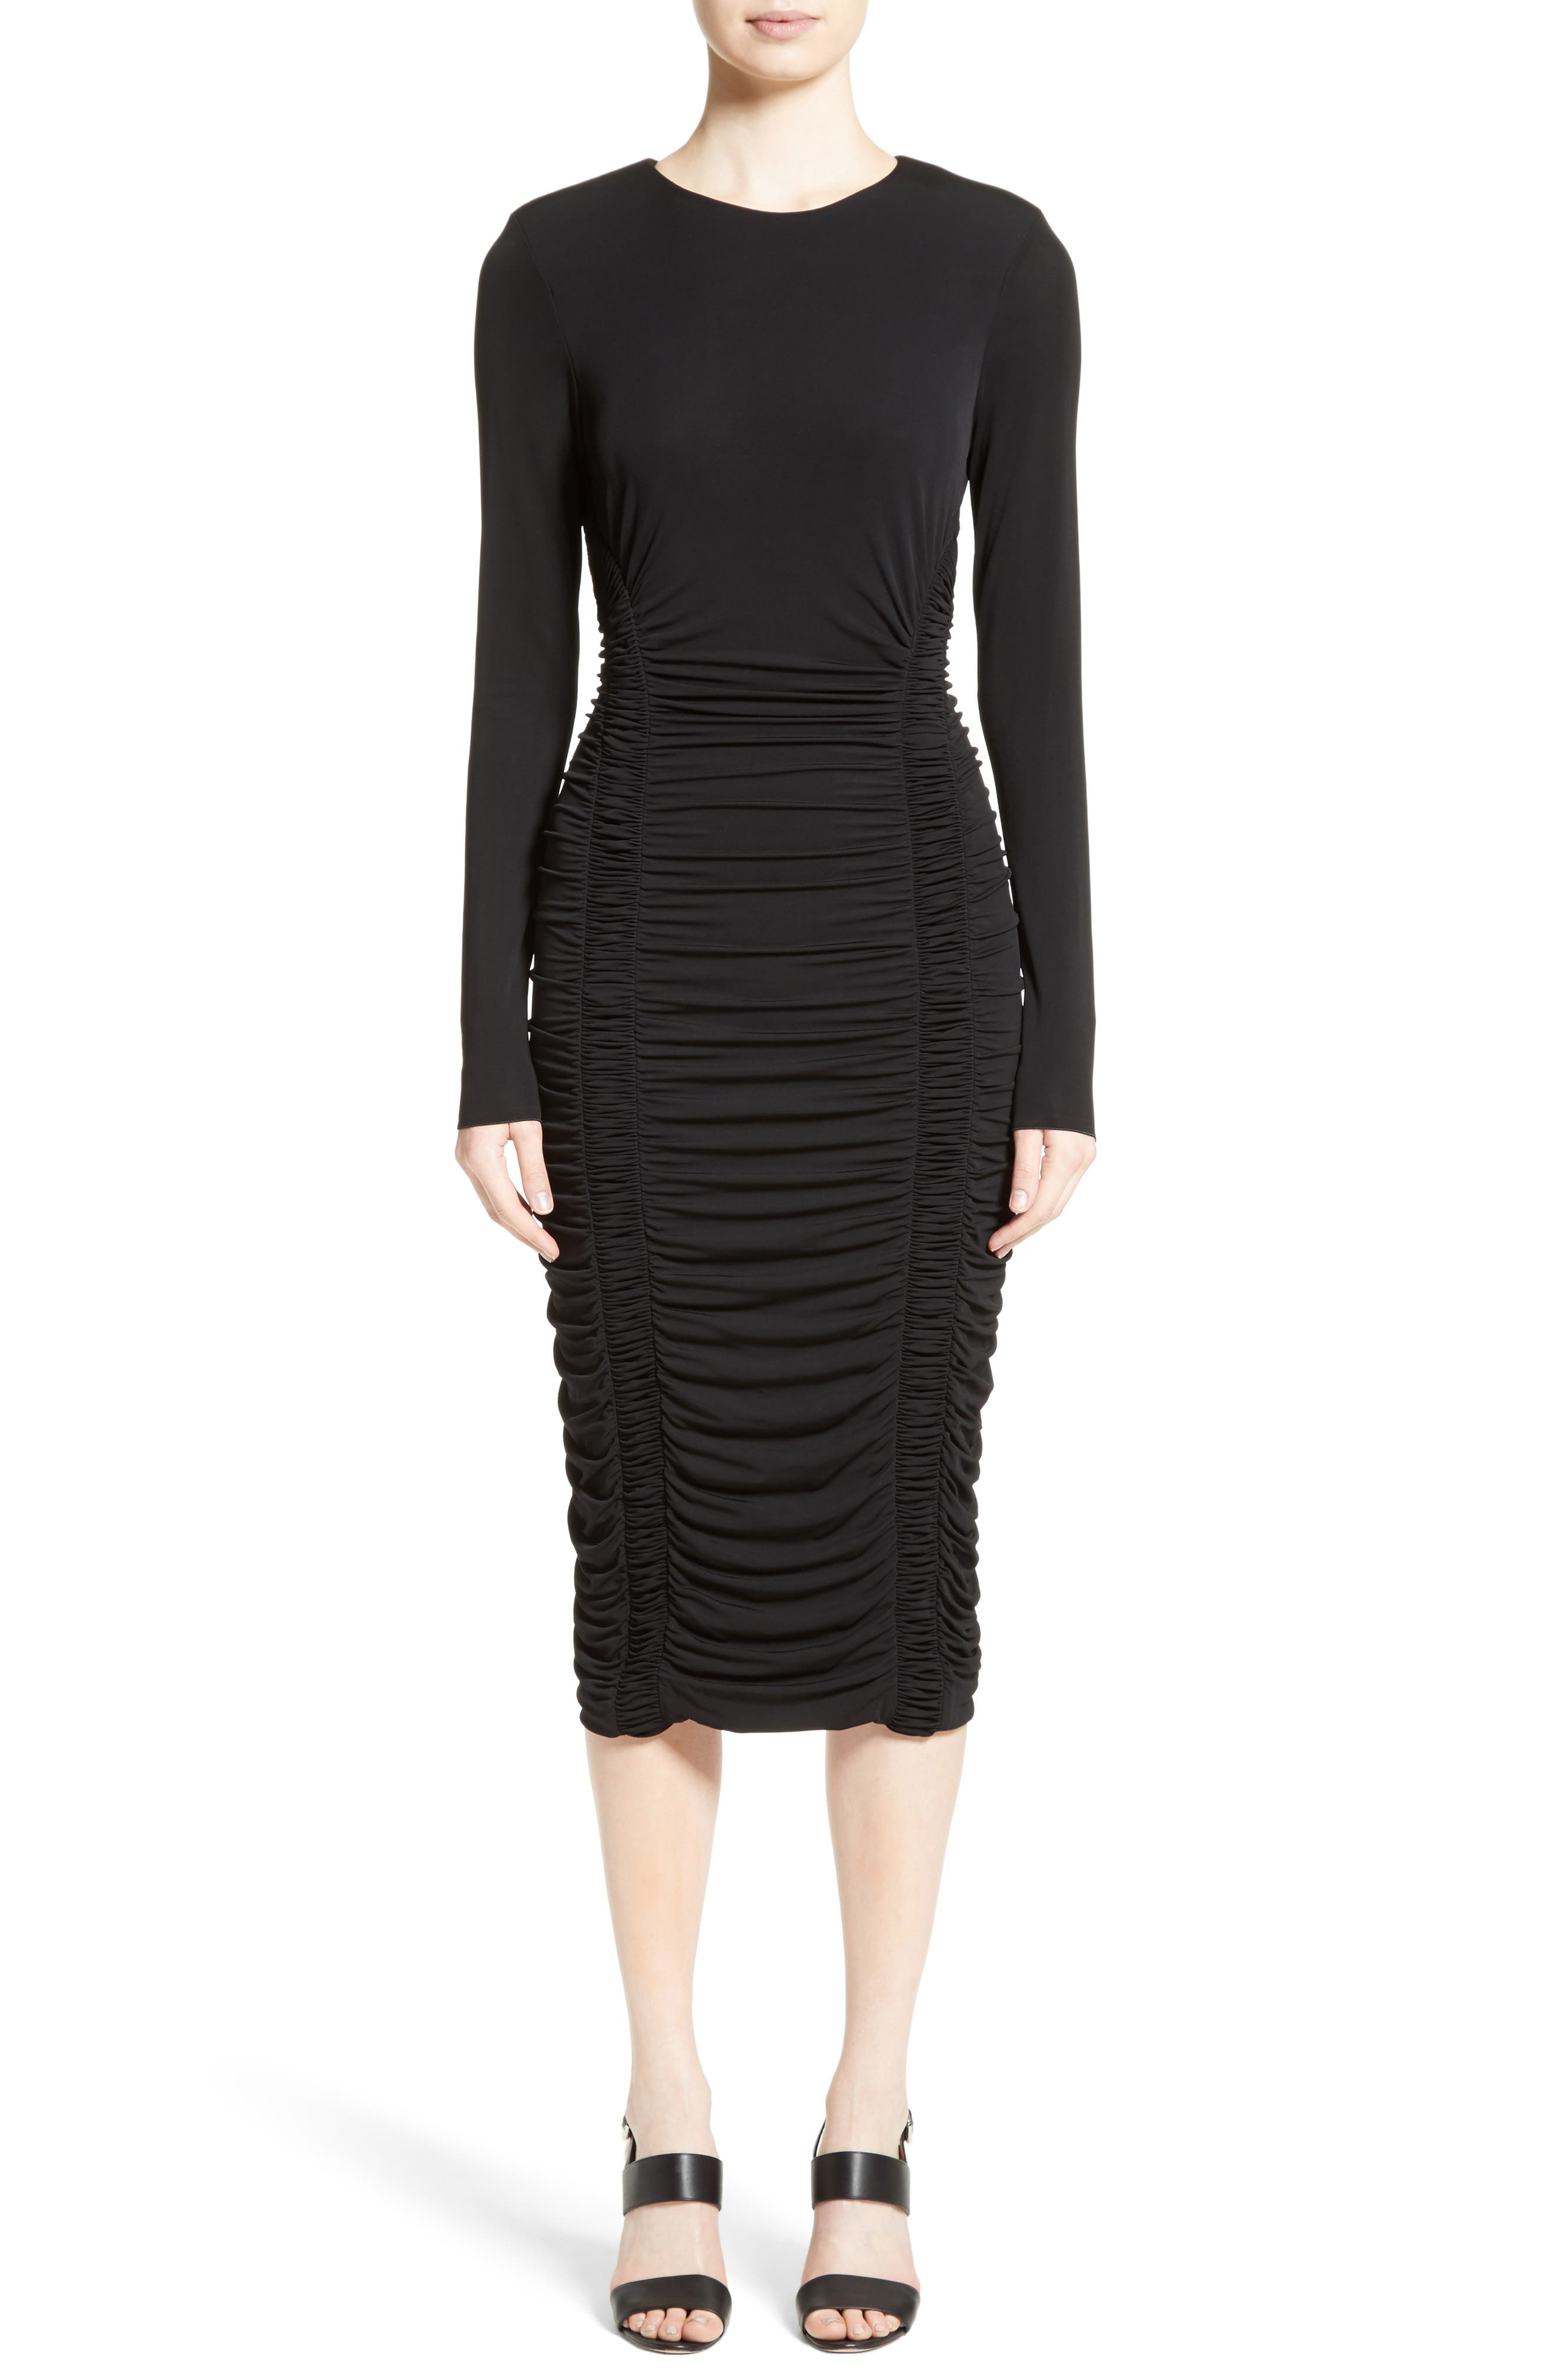 Alternate Image 1 Selected - Max Mara Ruched Stretch Jersey Dress